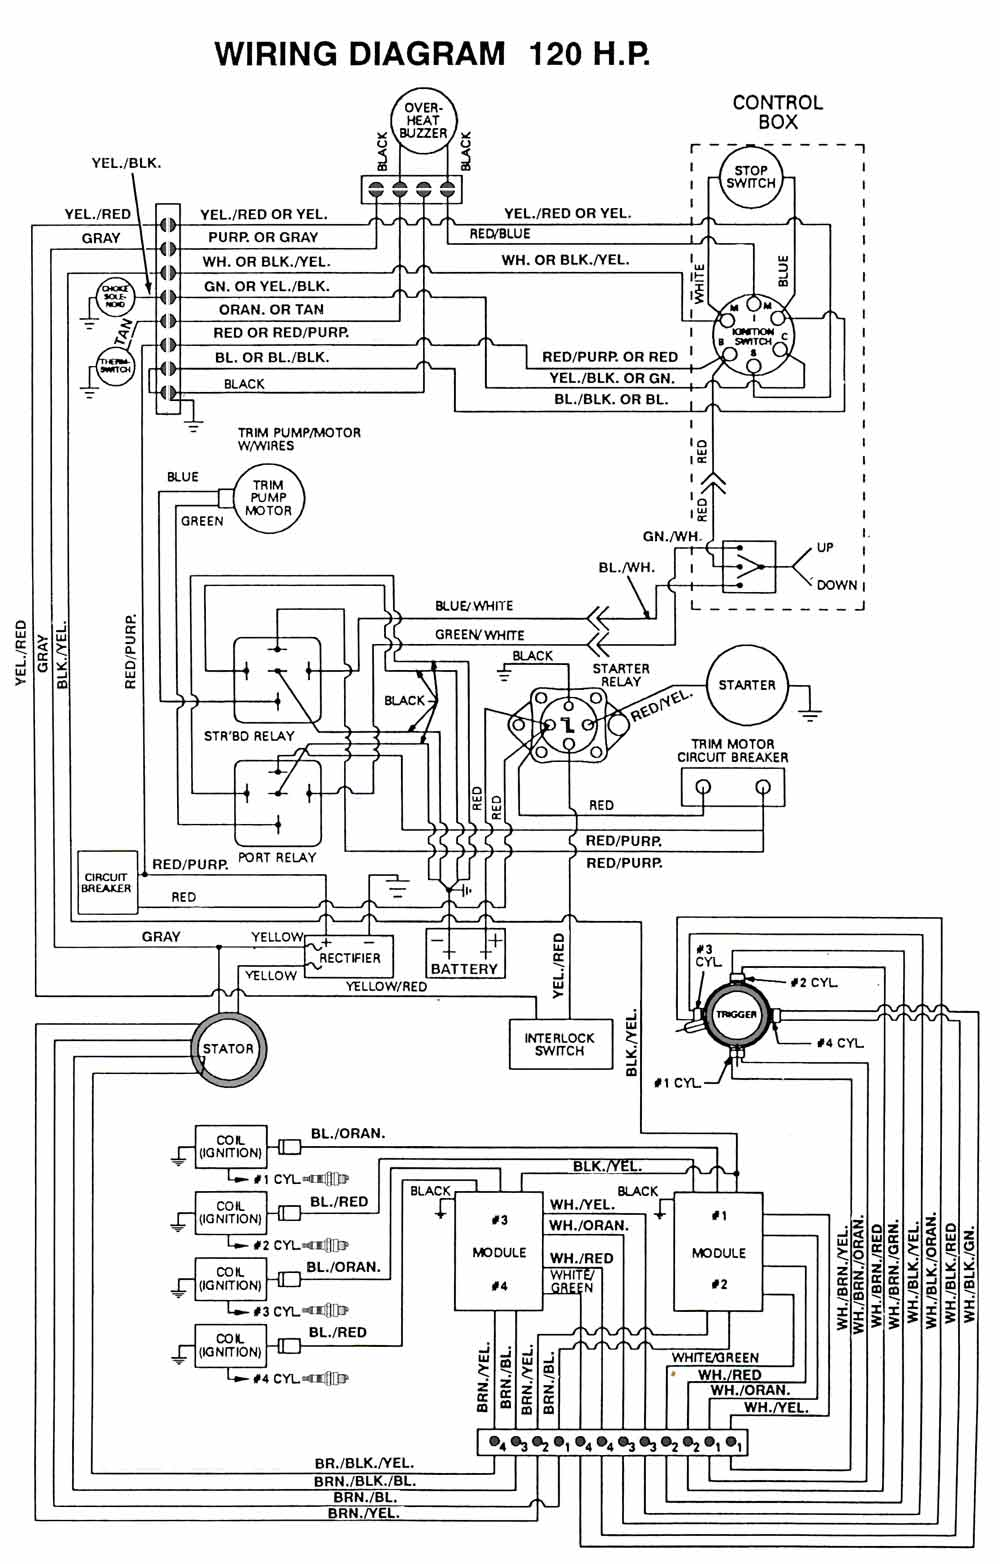 75 Mercury Optimax Wiring Diagram Simple Wiring Diagram Mercruiser Engine  Diagram 1997 Mercruiser Wiring Diagram